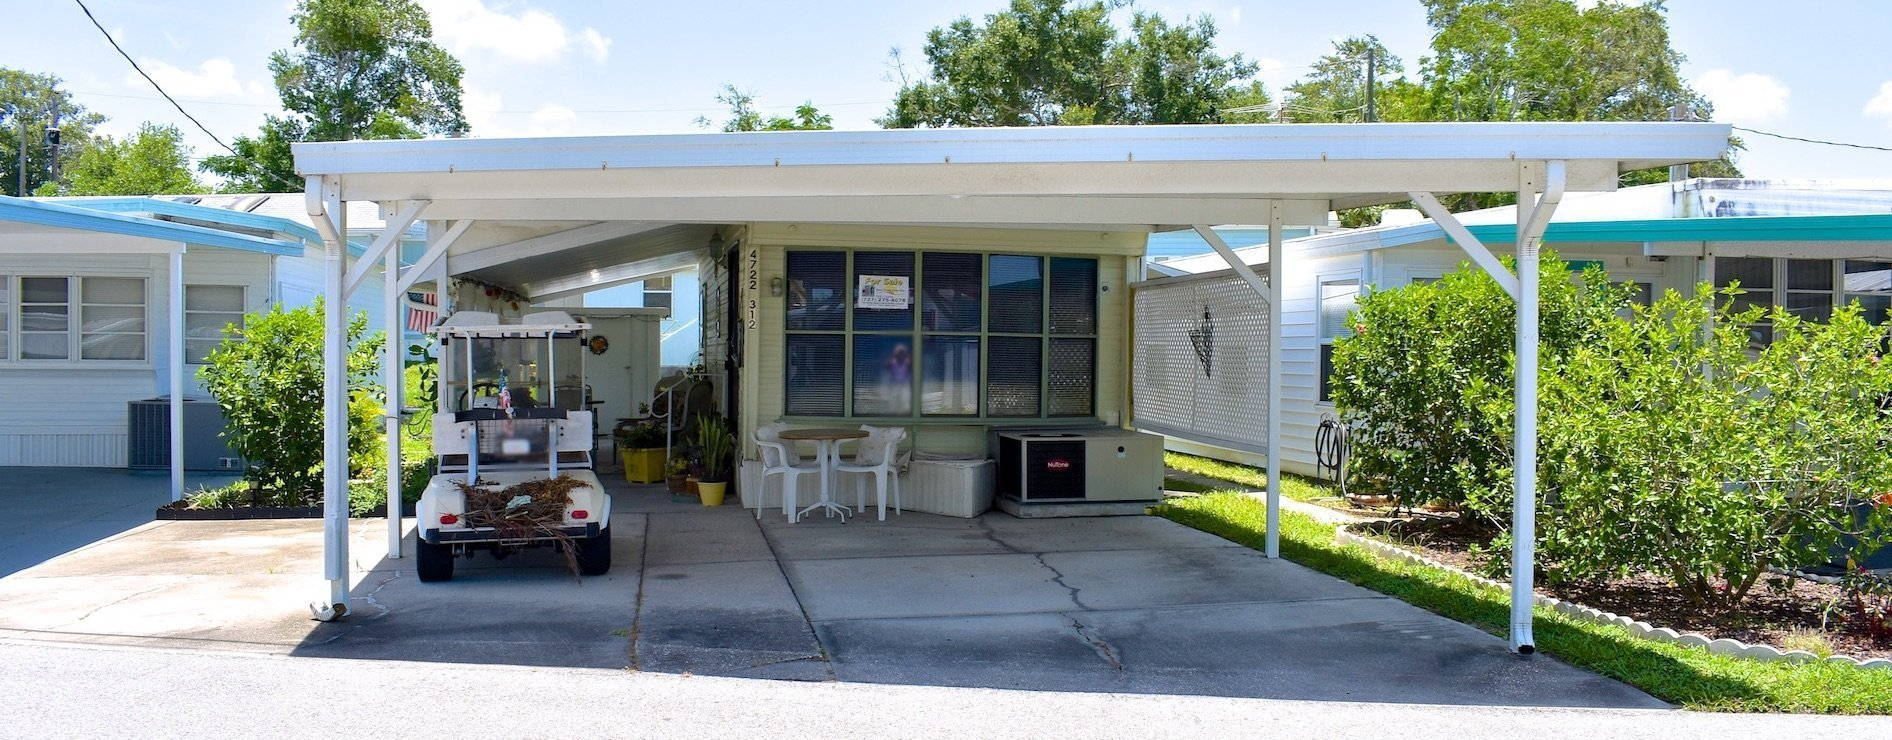 mobile-home-for-sale-20190625-037-wide Mobile Home Parks Clearwater Fl on rent clearwater fl, city of clearwater fl, mobile home parks seminole florida, mobile home in clearwater florida, queen fleet deep sea fishing clearwater fl, restaurants clearwater fl, mobile home 55 plus communities, apartments clearwater fl, mobile home parks bellingham wa, mobile home parks tampa florida area, mobile home park tampa fl, retirement communities clearwater fl, timeshares clearwater fl, churches clearwater fl, mobile home communities florida, clubs clearwater fl, mobile home parks largo florida, coachman park clearwater fl, mobile homes florida keys fl, home builders clearwater fl,